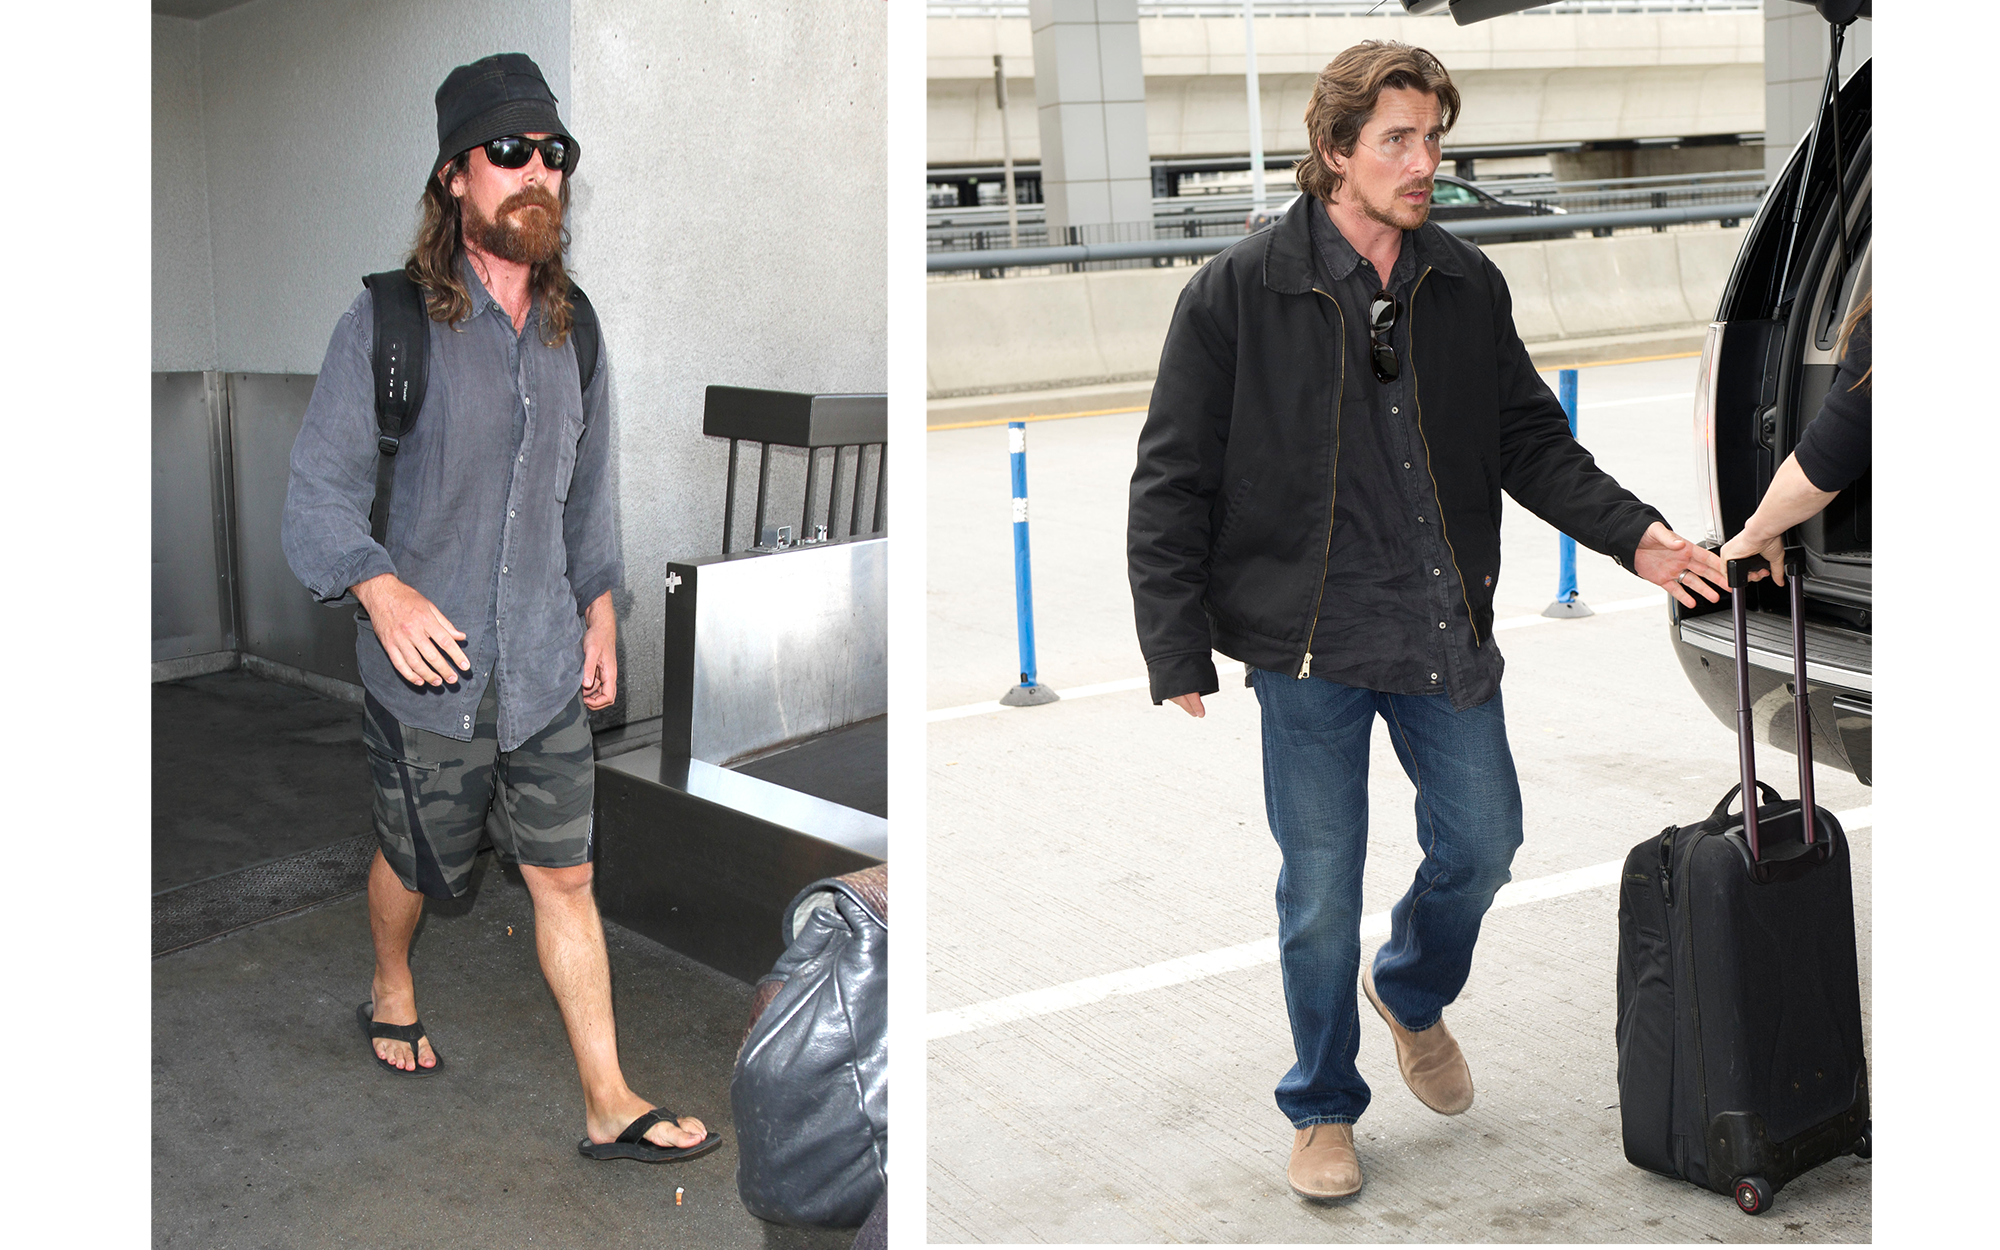 Celebrity Airport Travel: Christian Bale